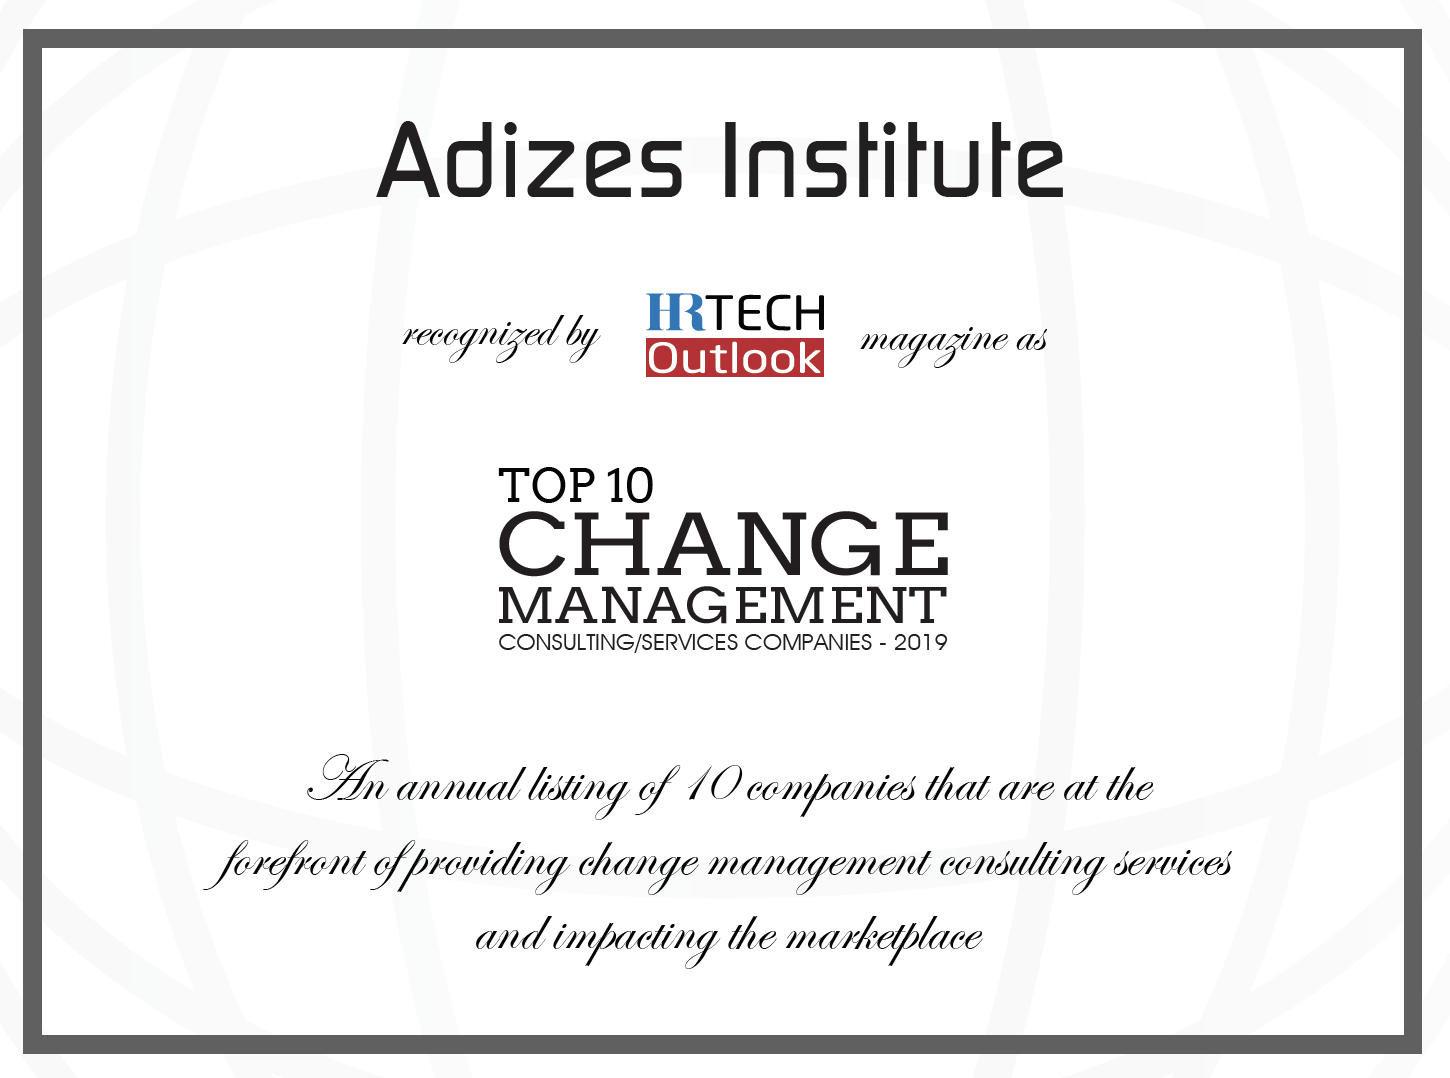 Top 10 Change Management Consulting Companies of 2019